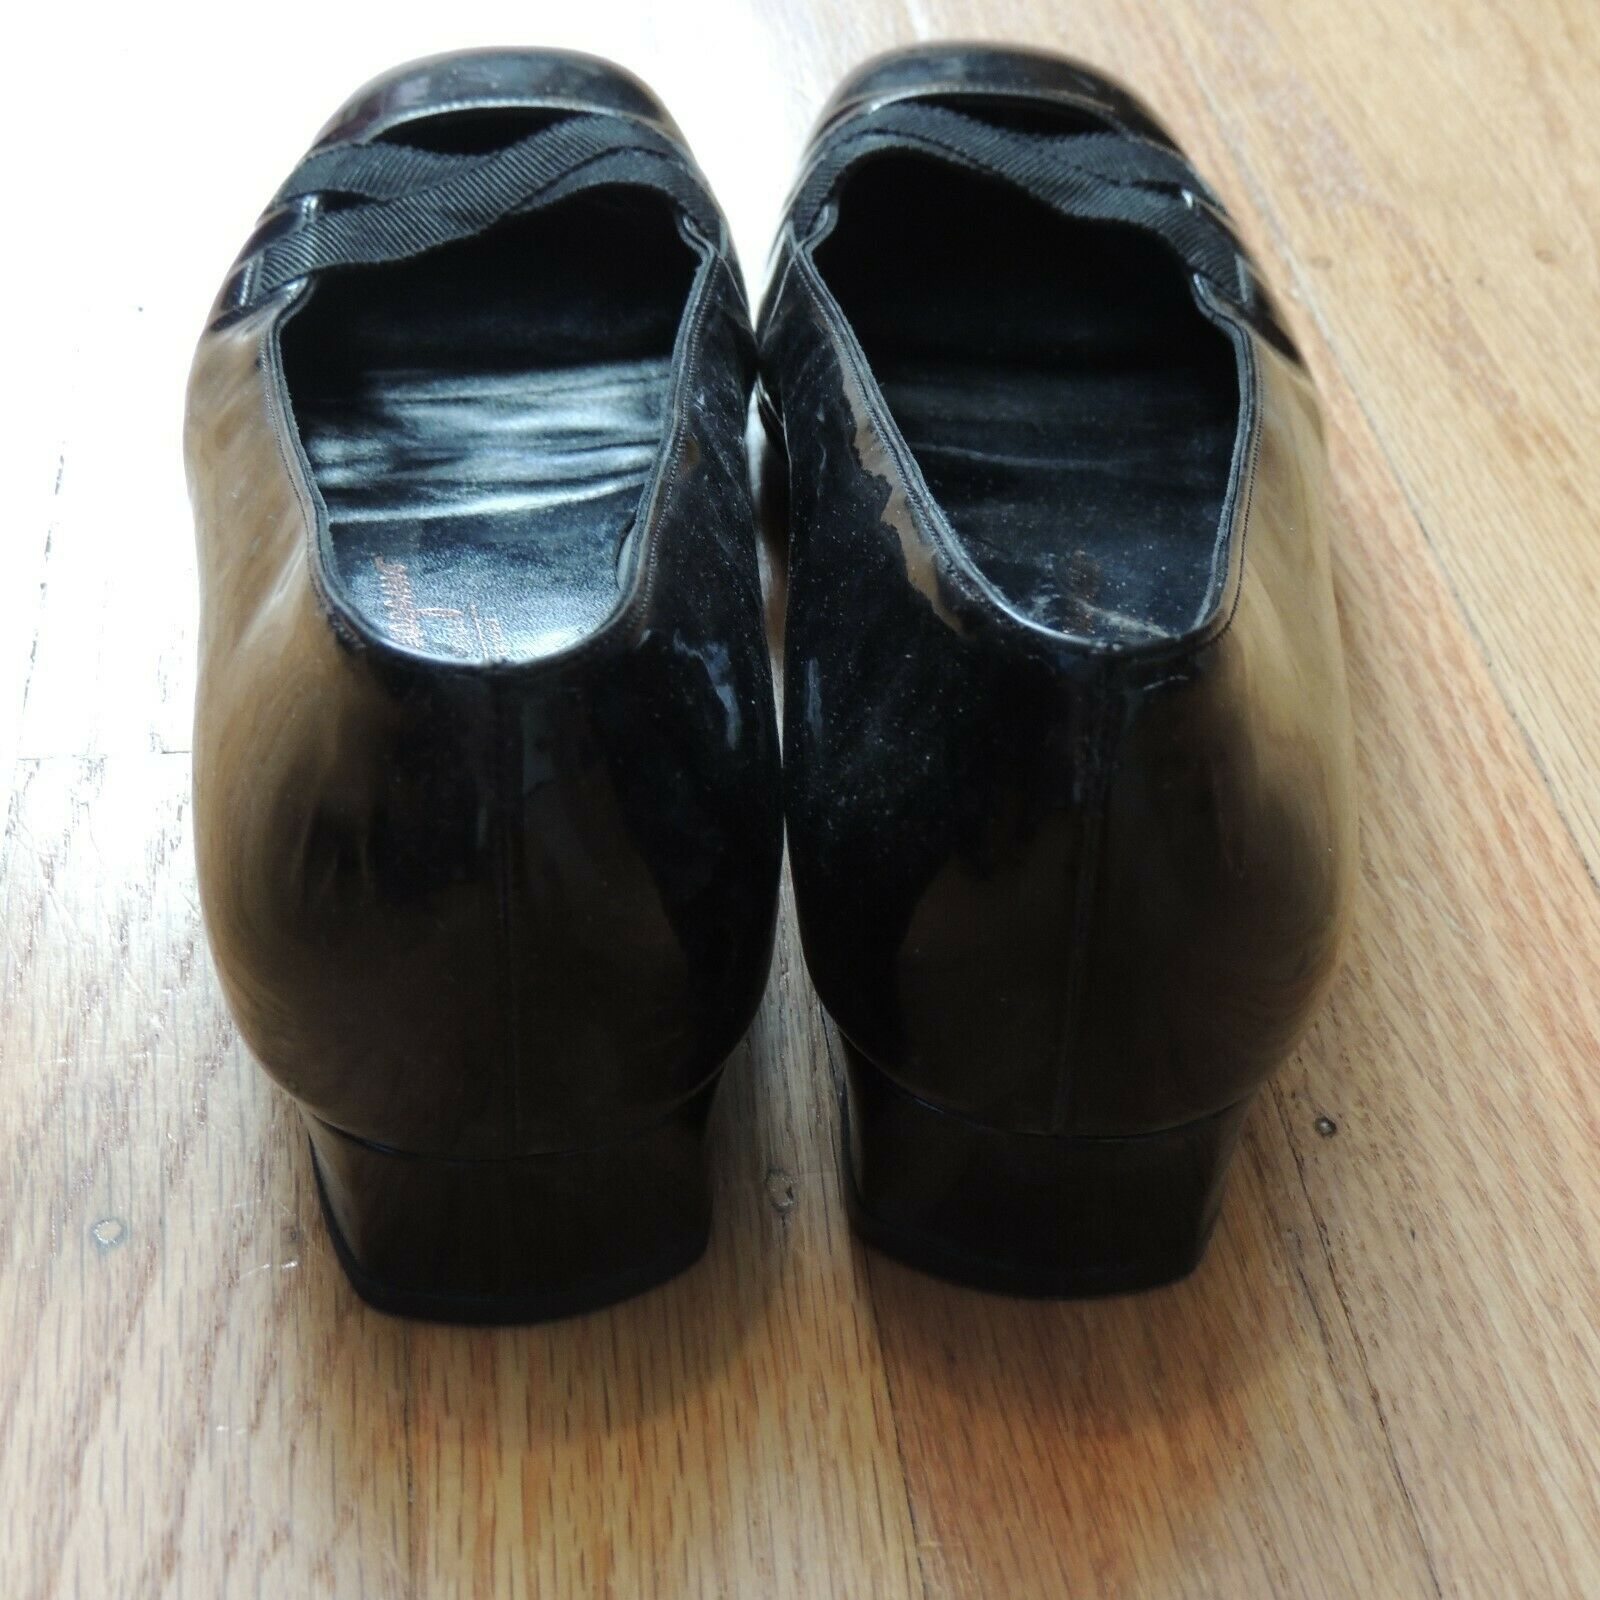 Salvatore Ferragamo Patent Leather Flats Black Size Size Size 9 ef97a5